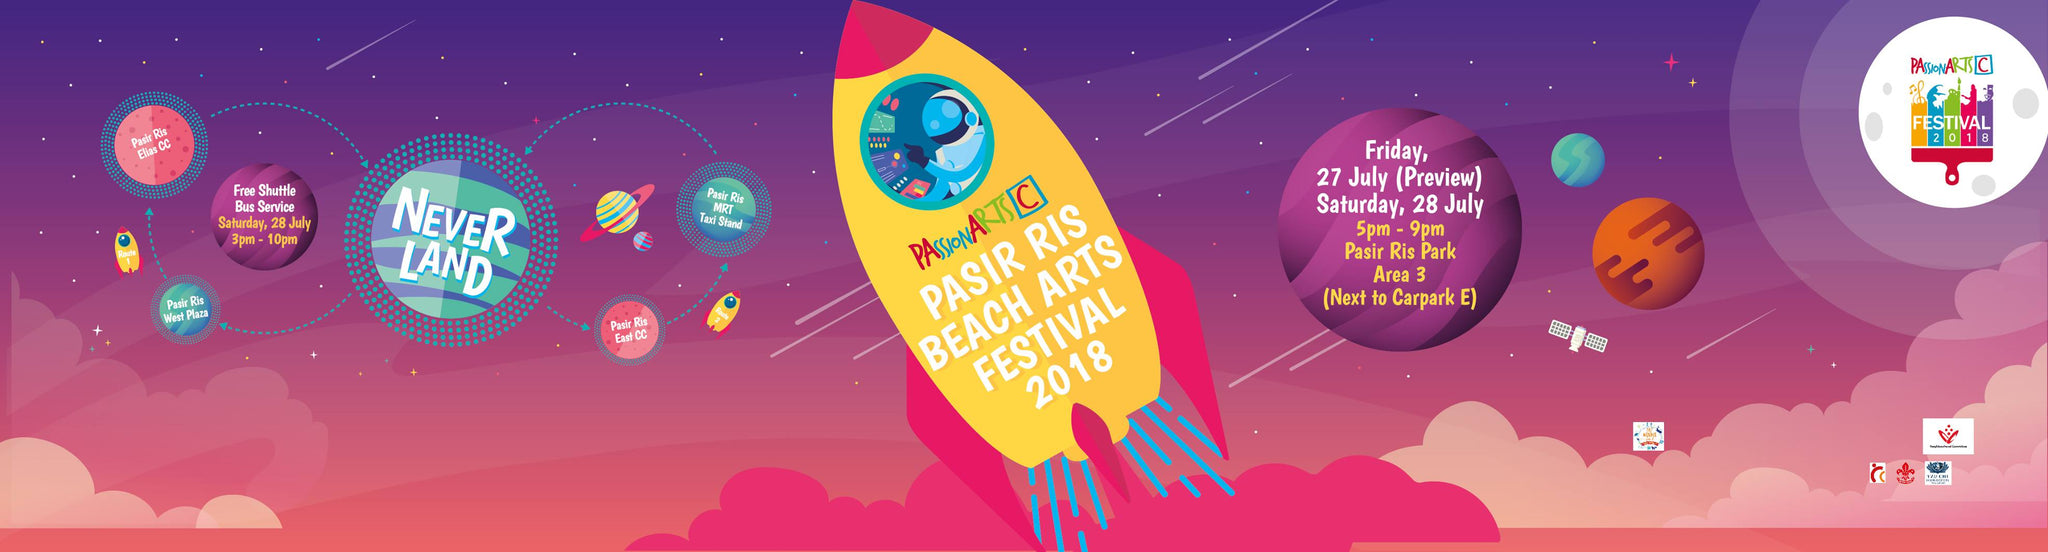 MUST GO: Pasir Ris Beach Arts Festival - Neverland